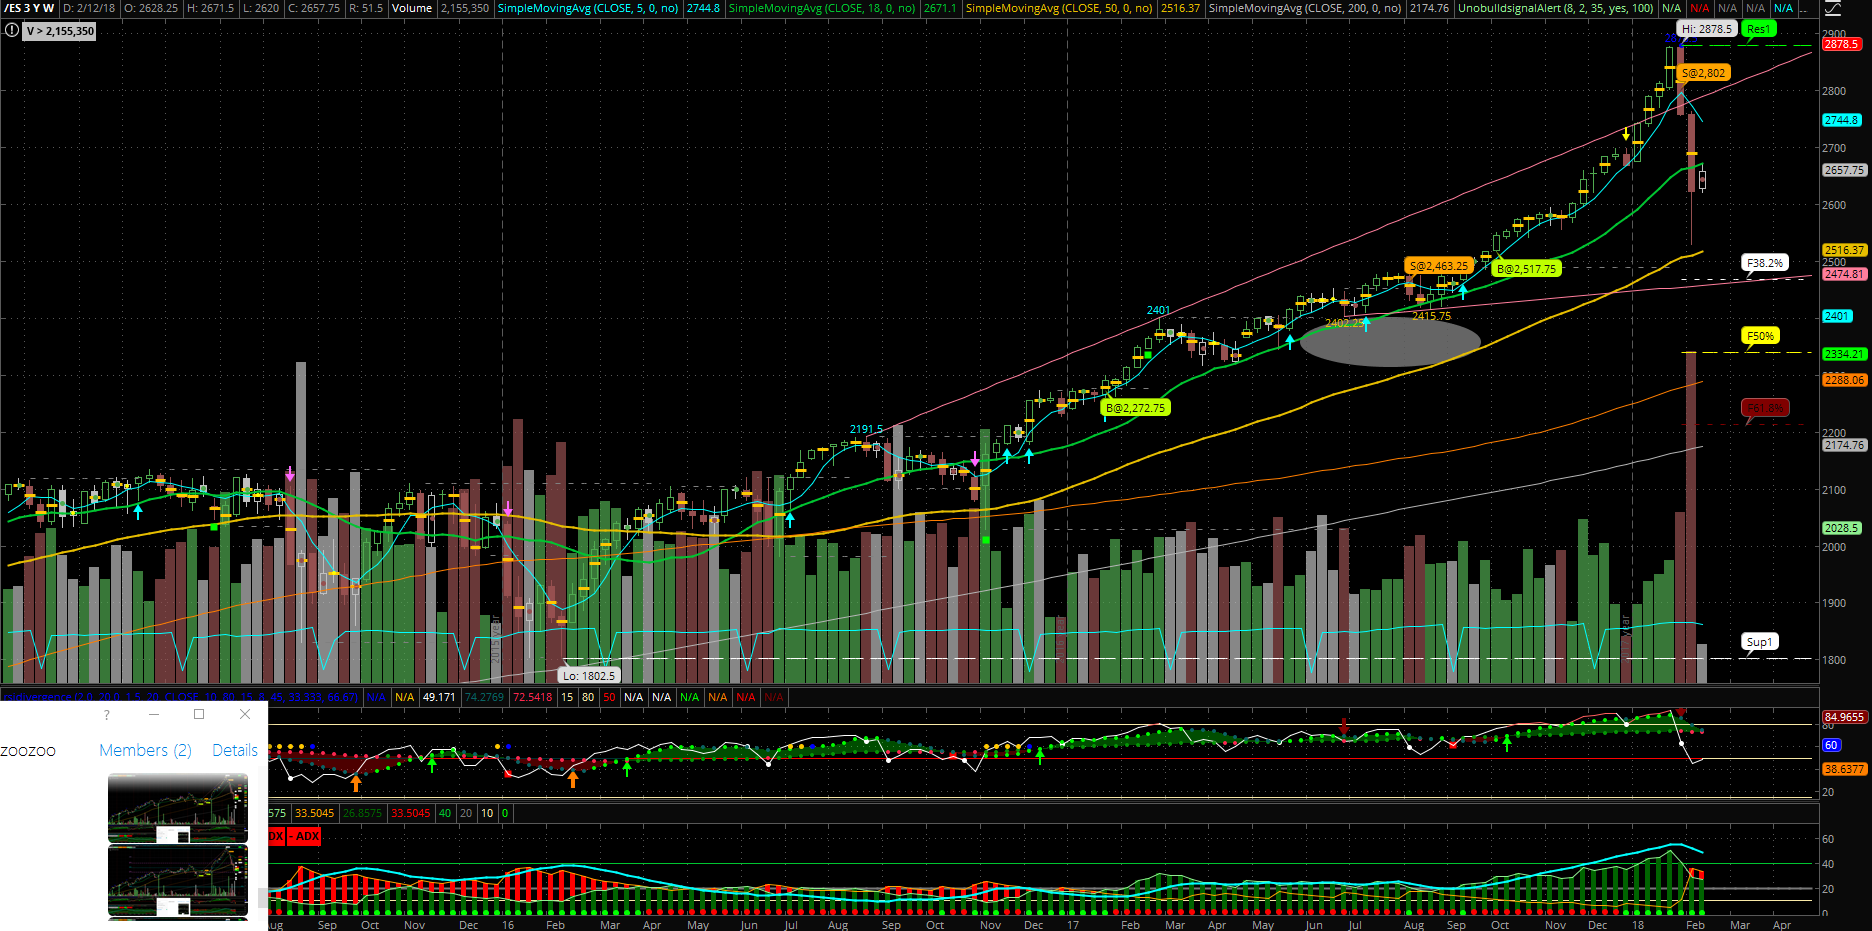 ES S&P 500 mini futures weekly chart with studies